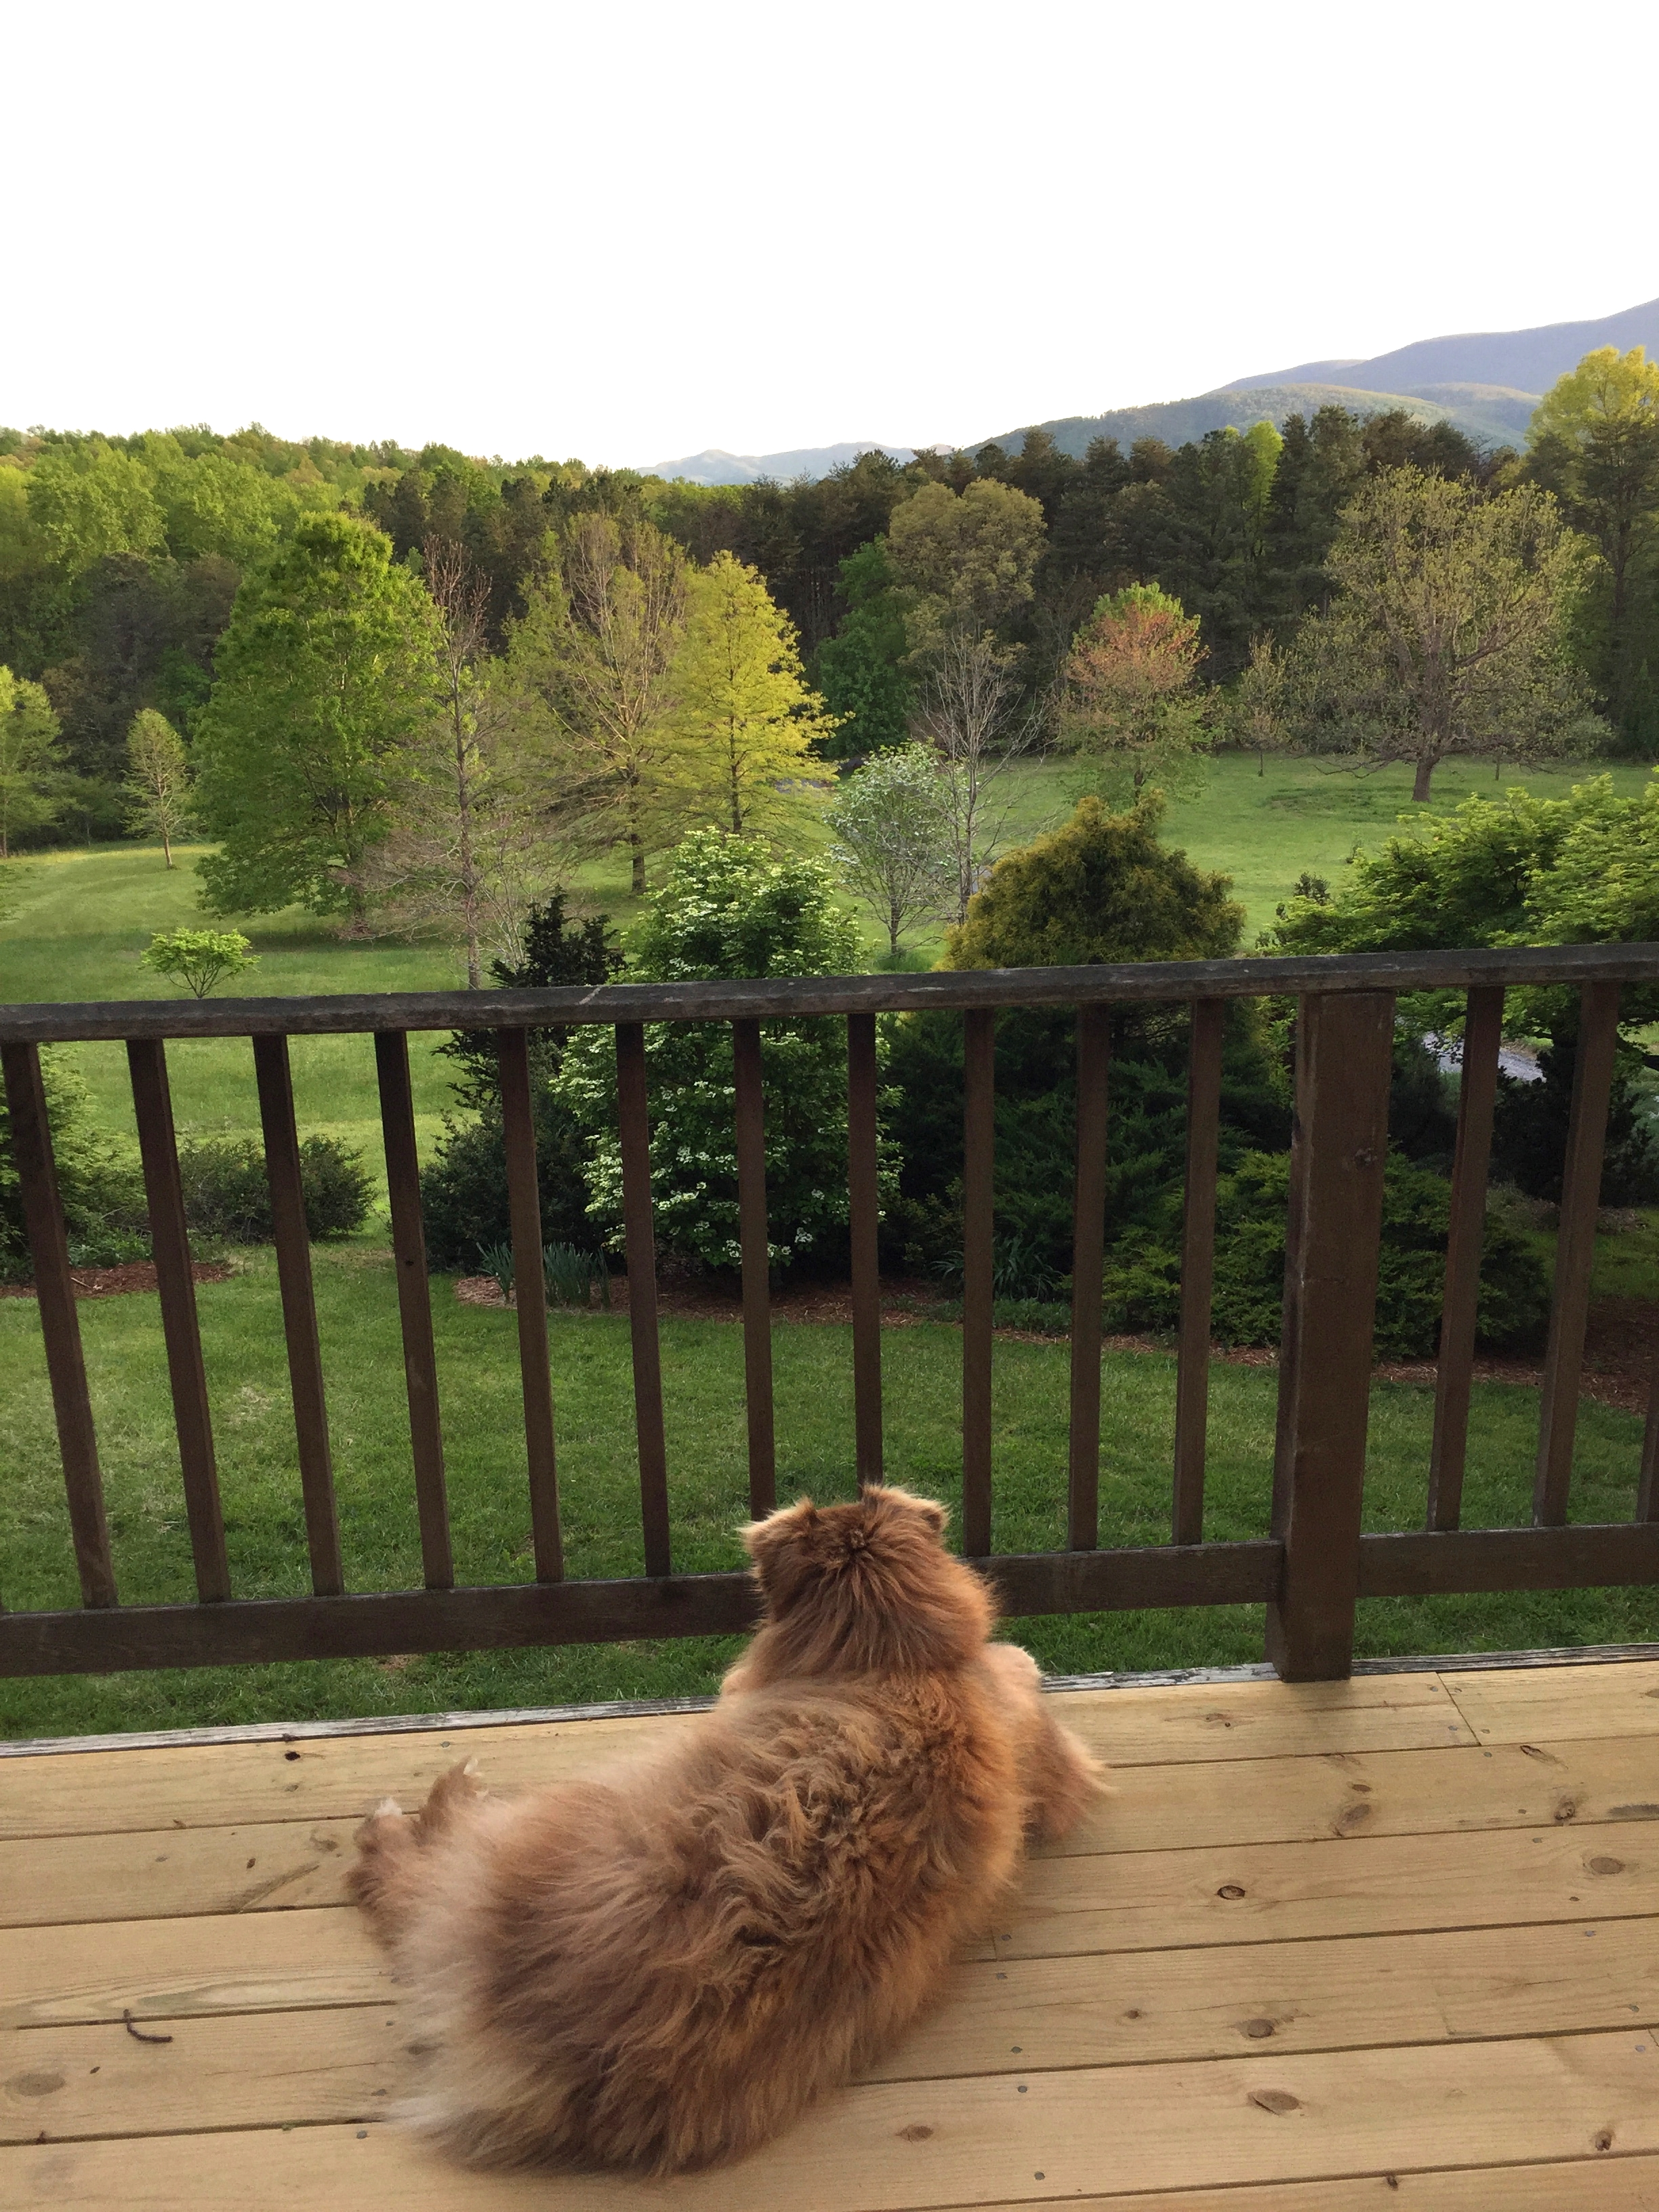 Mira, the Shop Dog, watching over her Princess-dom in the May evening light.